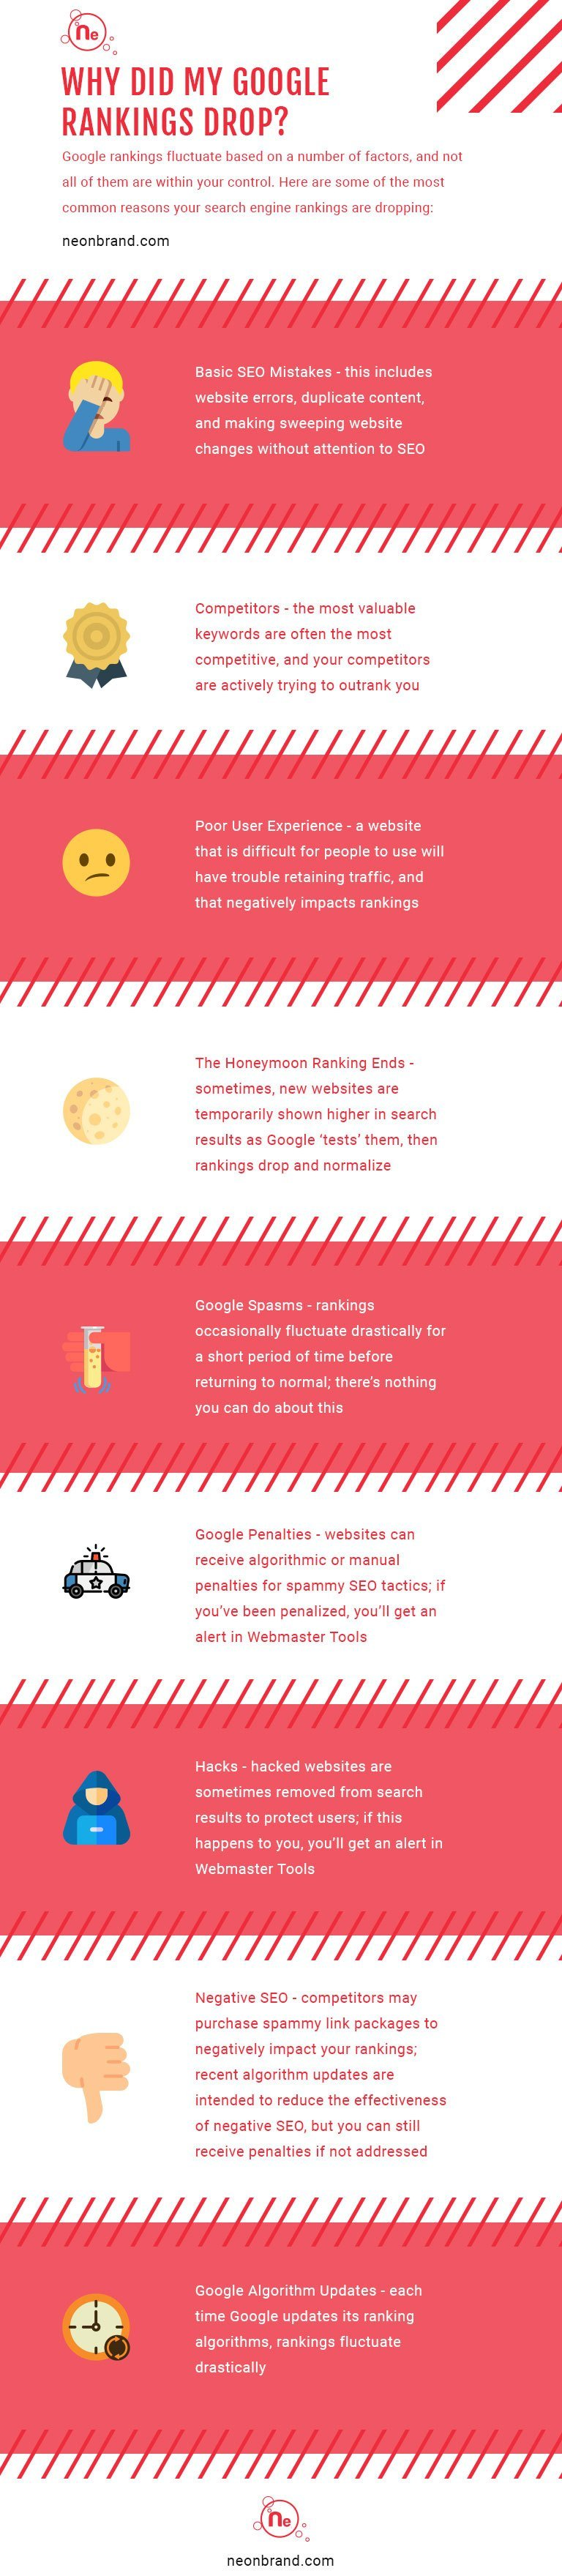 why did my google rankings go down? NeONBRAND troubleshoots ranking drops.